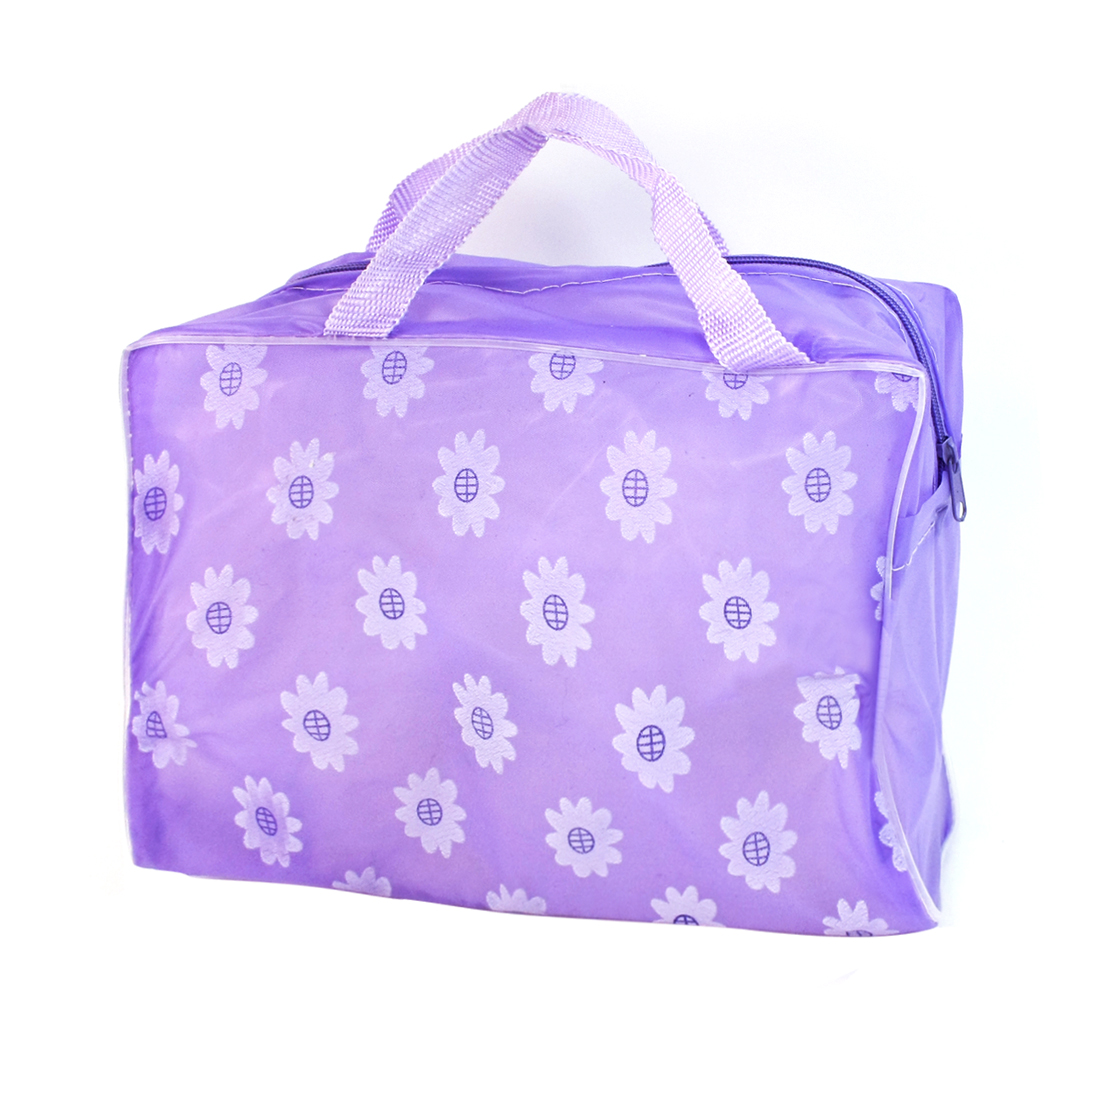 Light Purple Sunflower Pattern Zippered Translucent Shower Bag for Bathroom